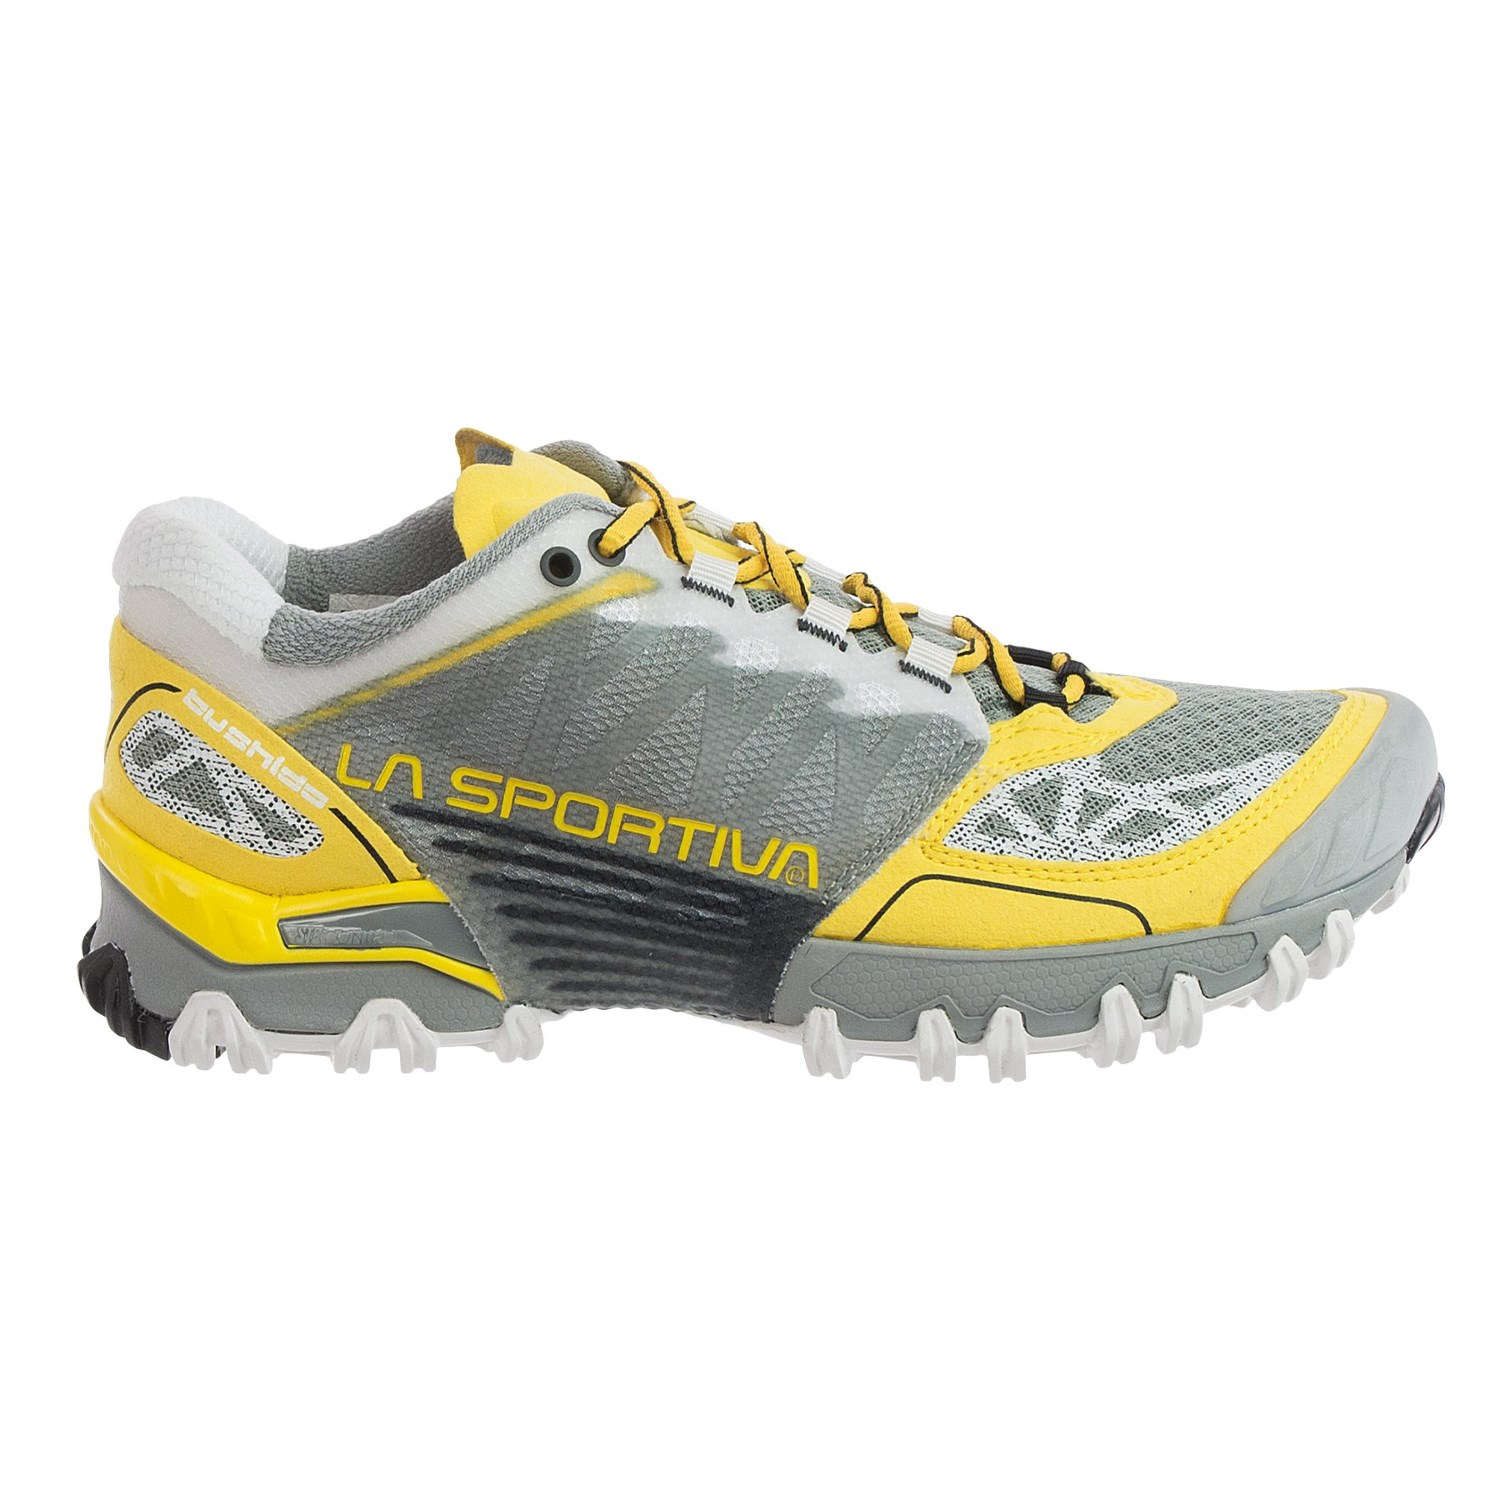 La Sportiva Women S Running Shoes